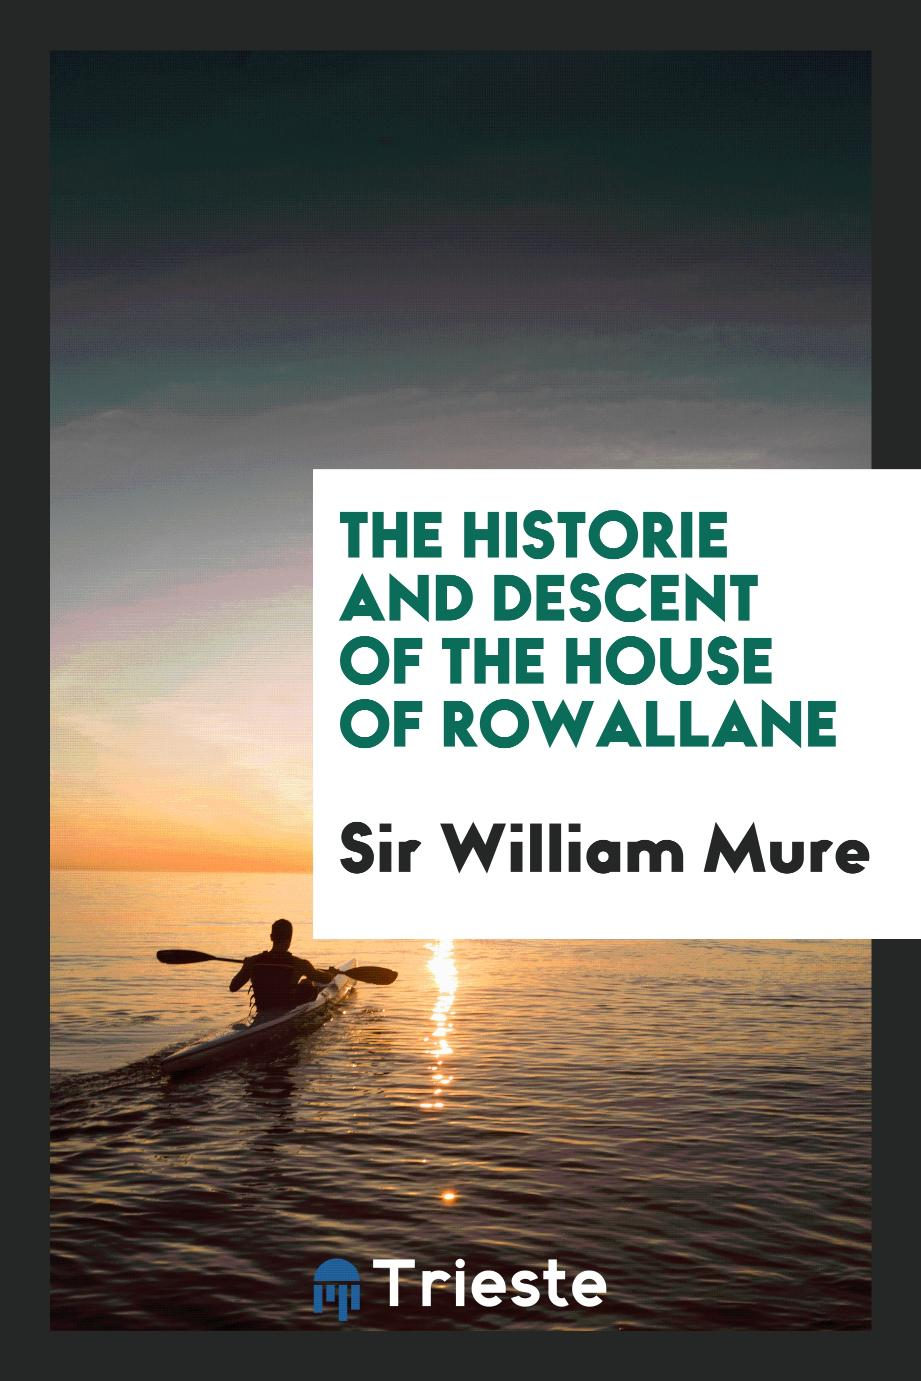 The Historie and Descent of the House of Rowallane